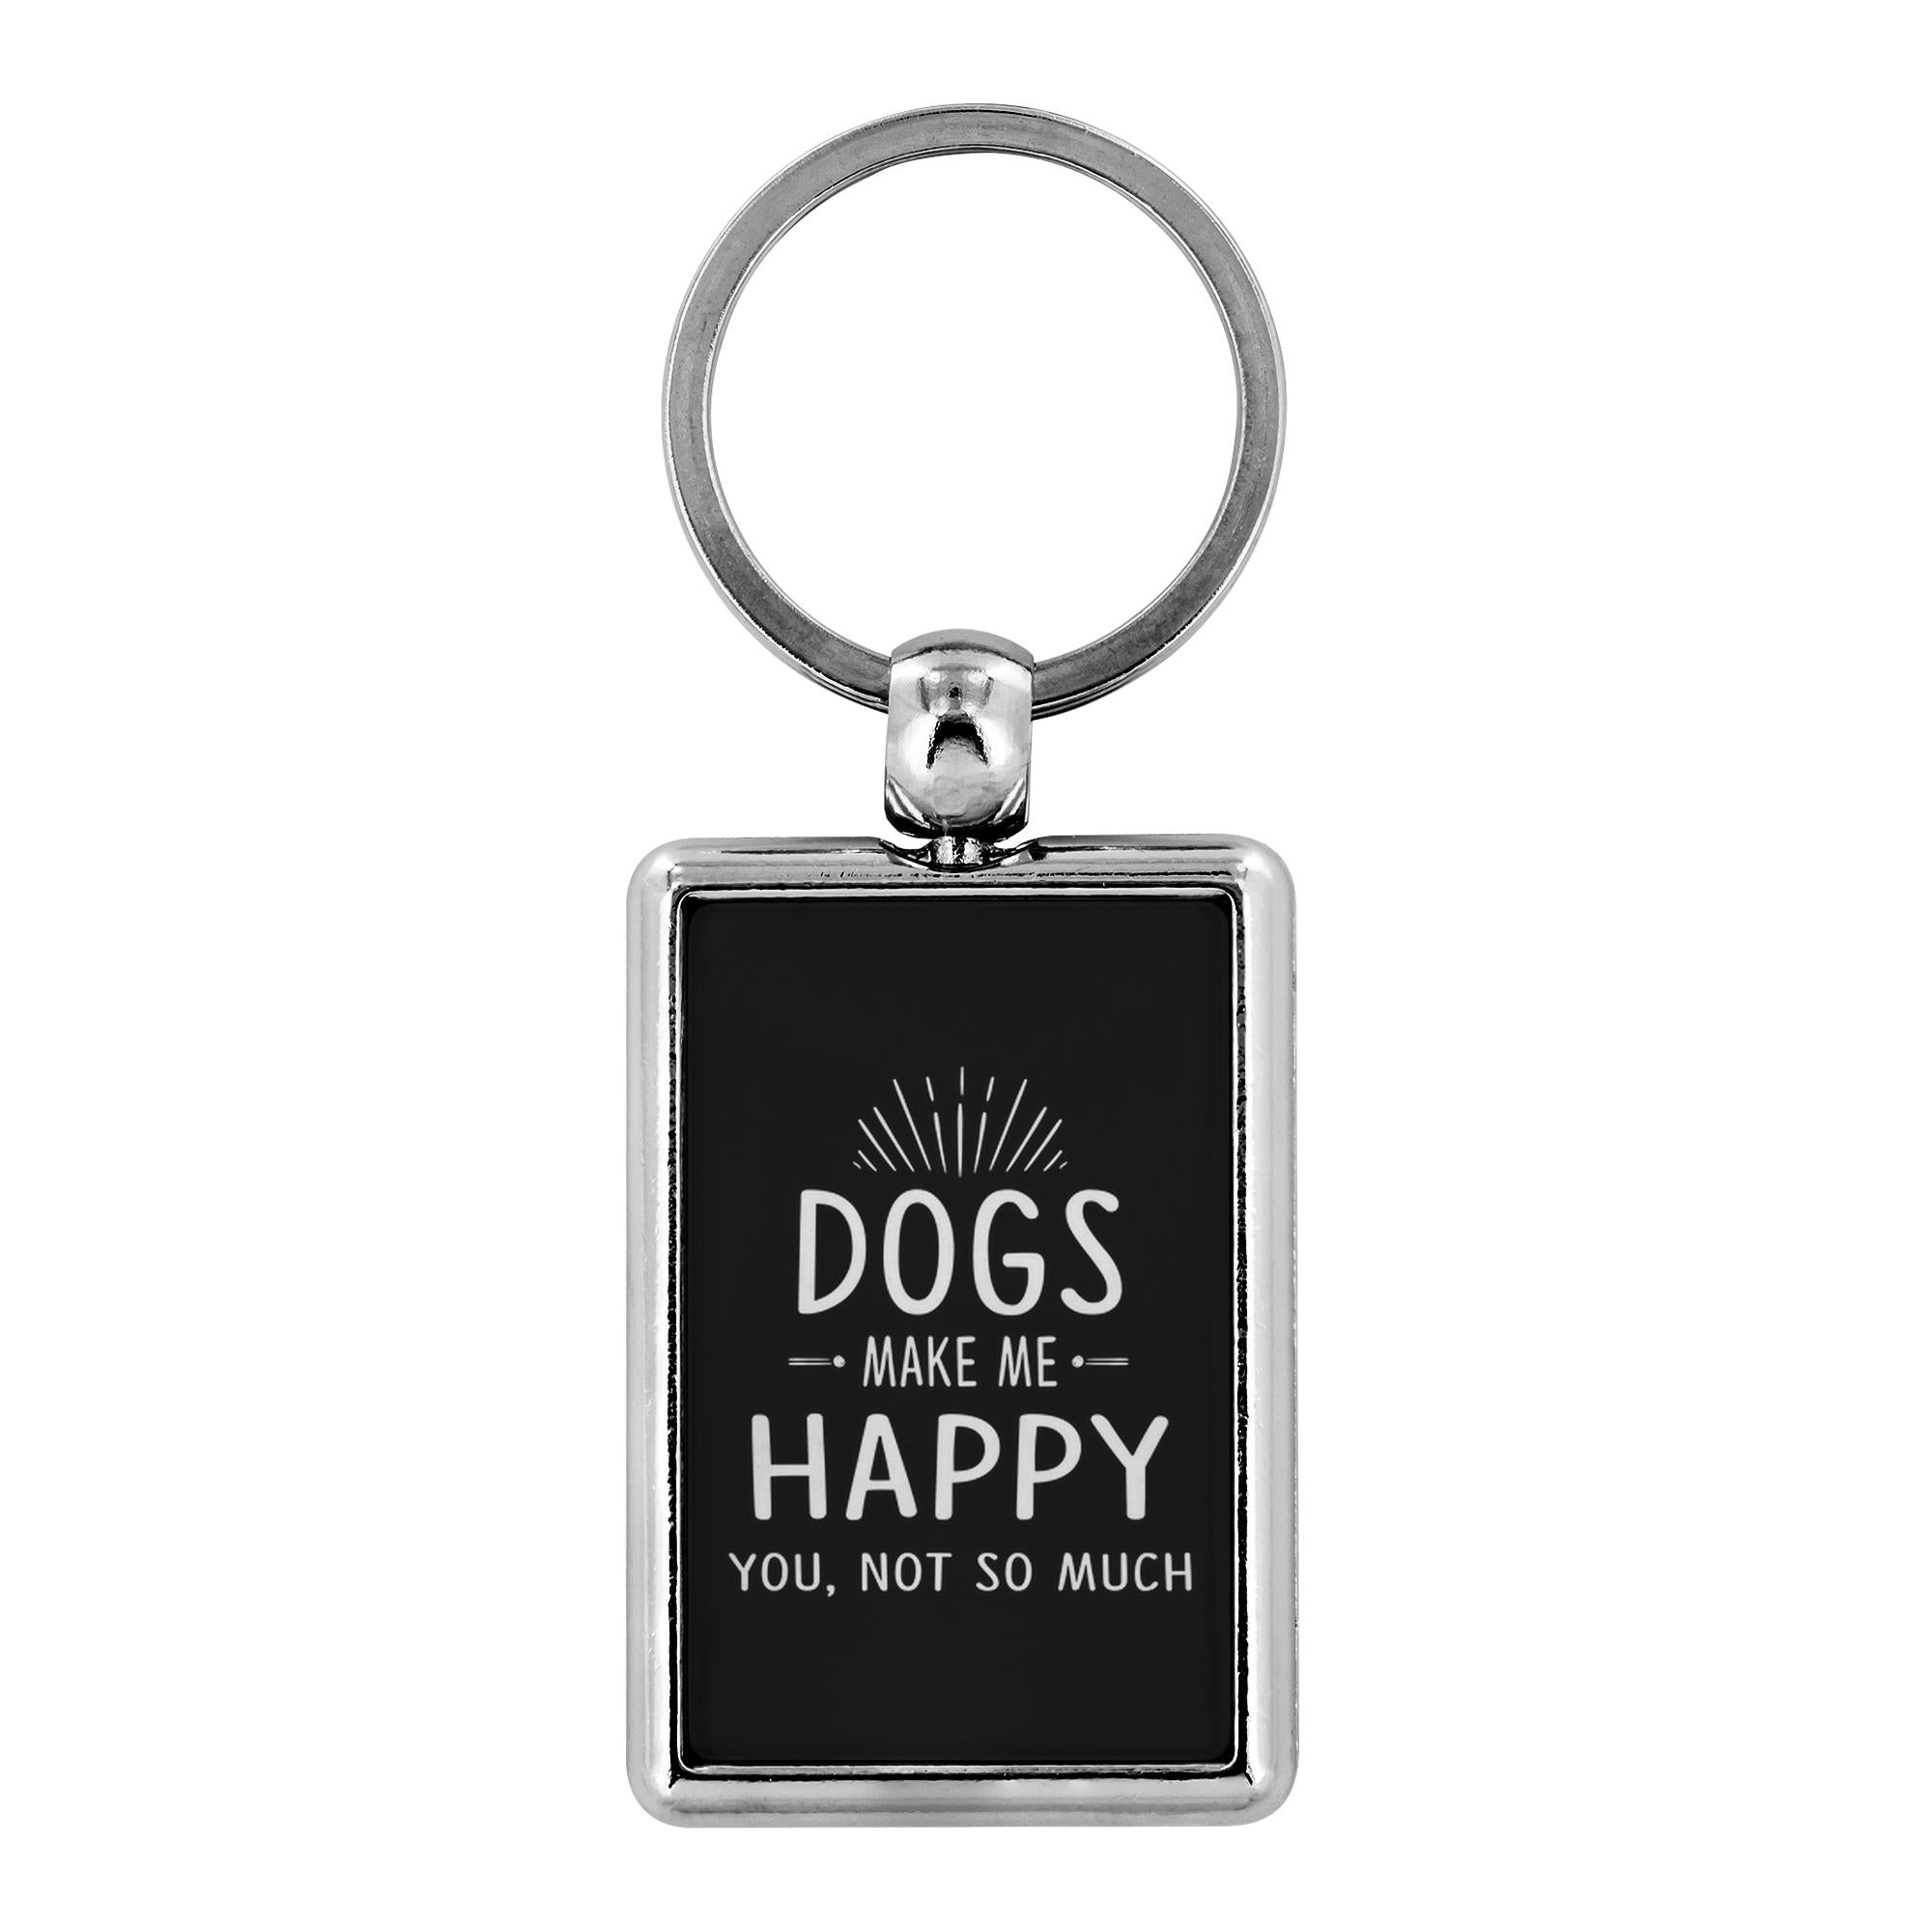 Dogs- Dog make me happy you, not so much - Keychain-Keychain-I love Veterinary